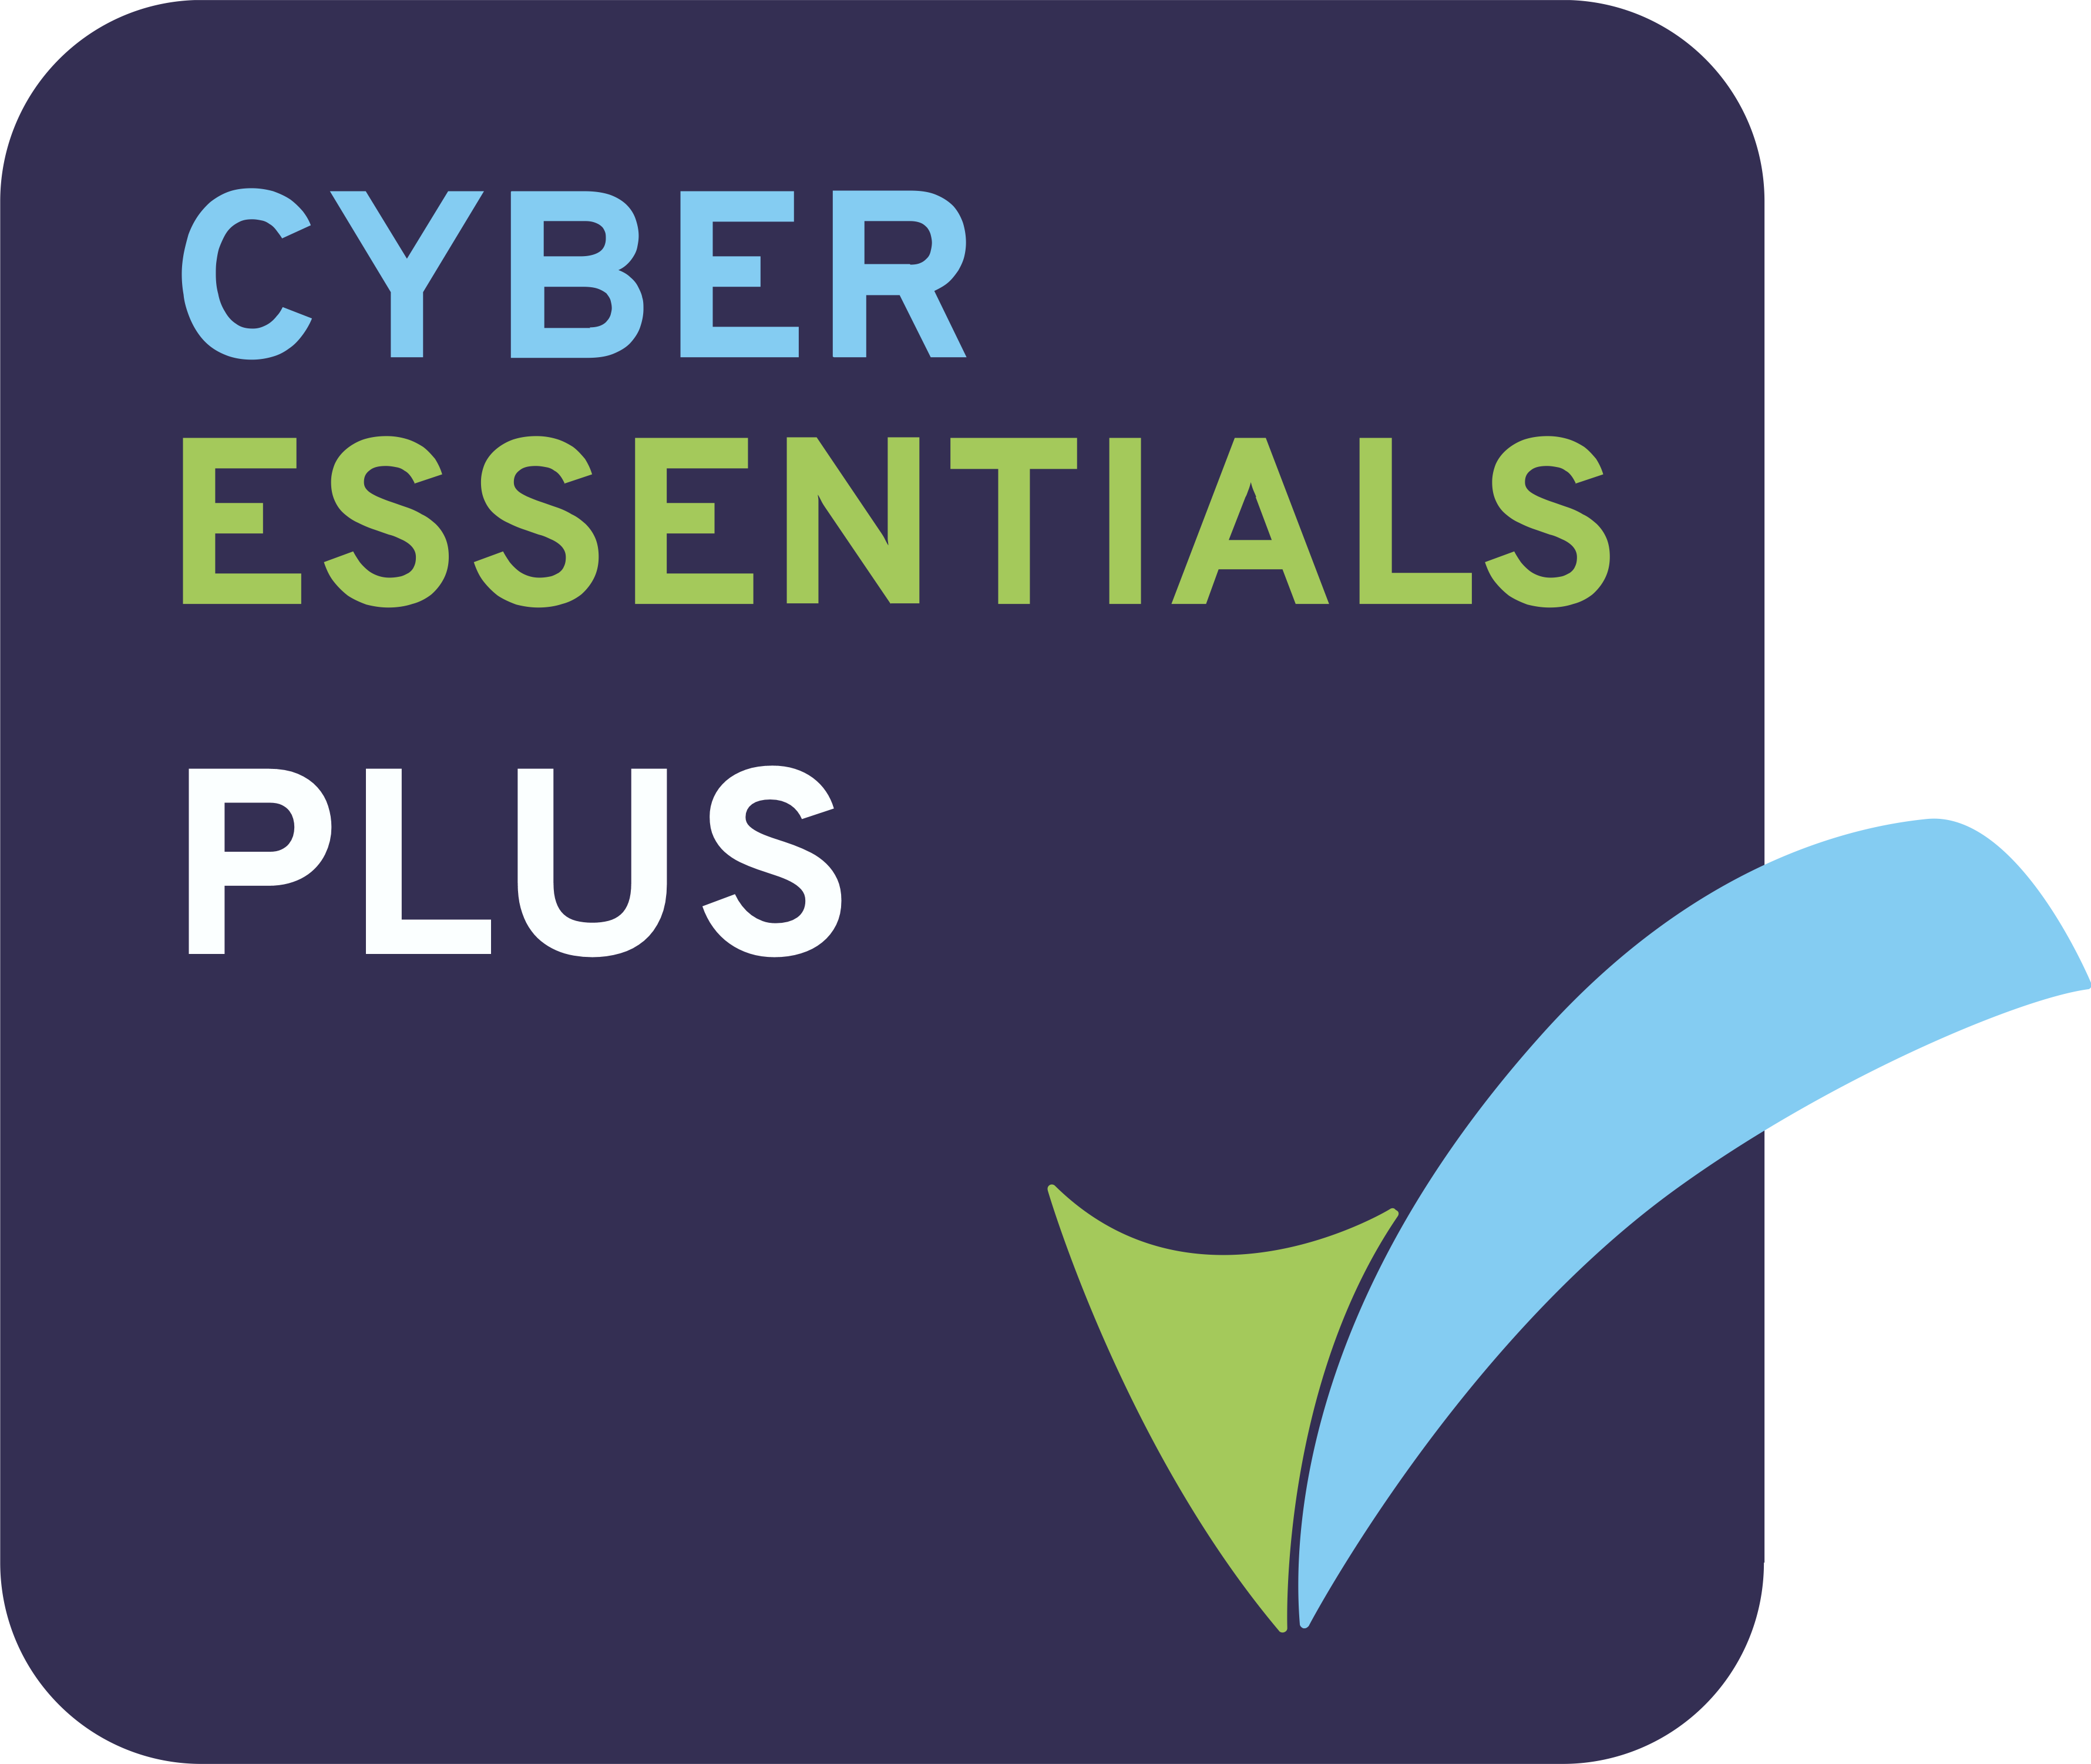 Cyber Essentials Plus certification logo